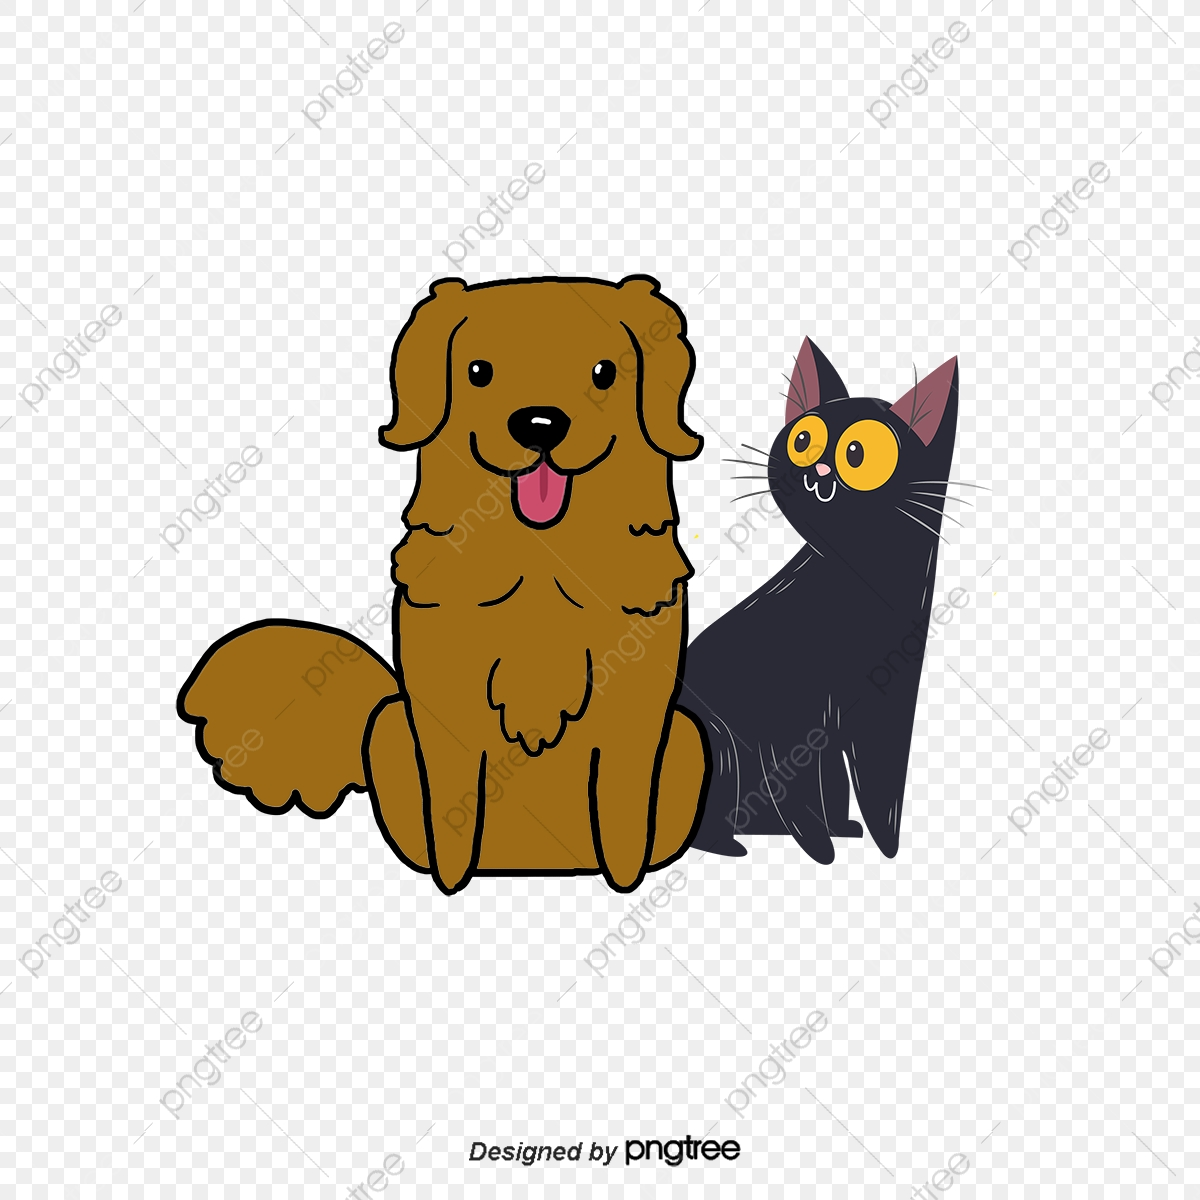 Cartoon Dog Cat Material, Dog Clipart, Cat Clipart, Cartoon Clipart.